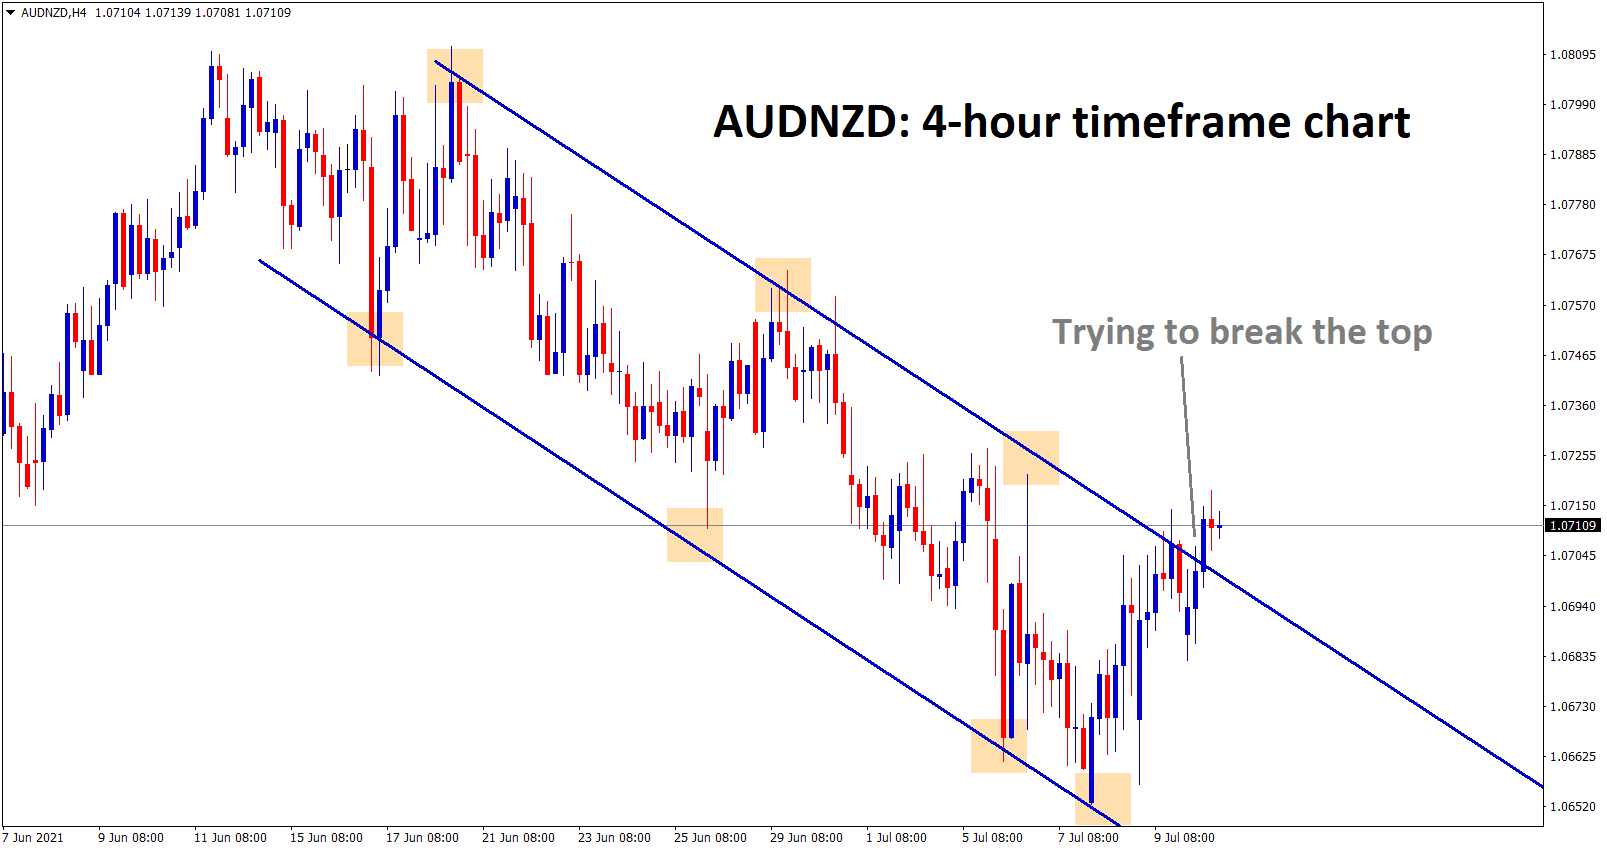 AUDNZD is trying to break the top of the descending channel